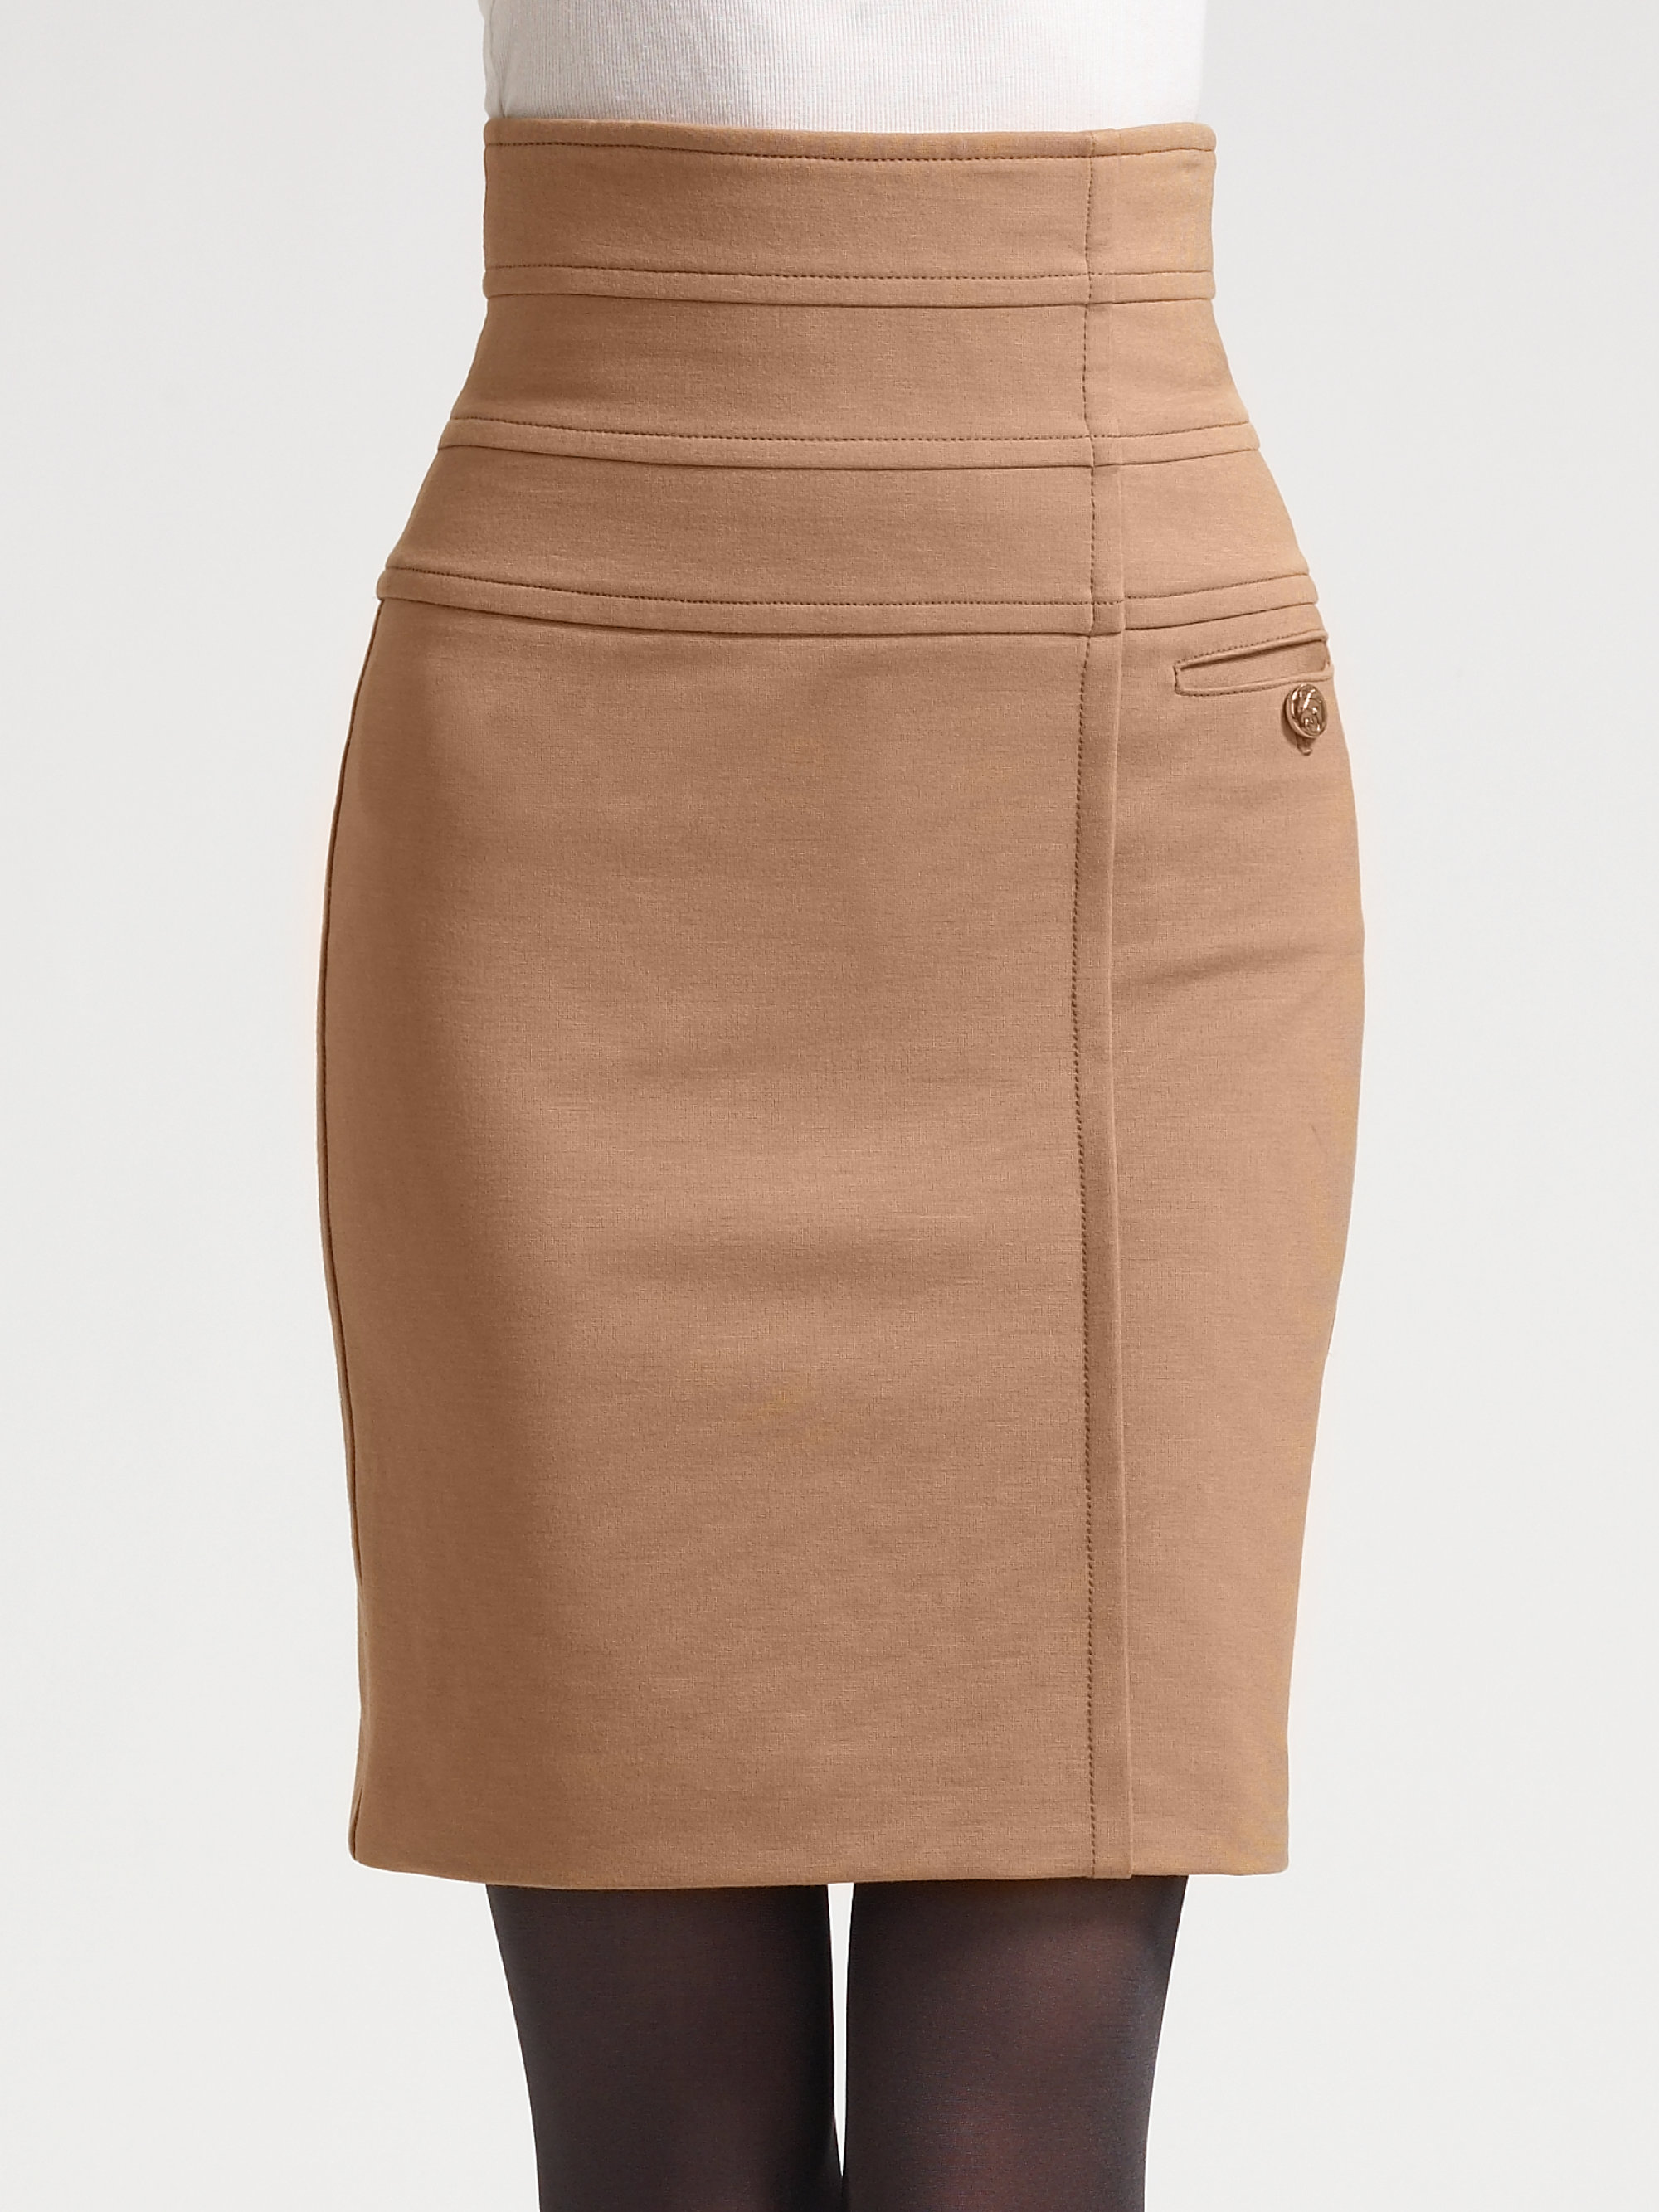 how to wear a jersey knit skirt